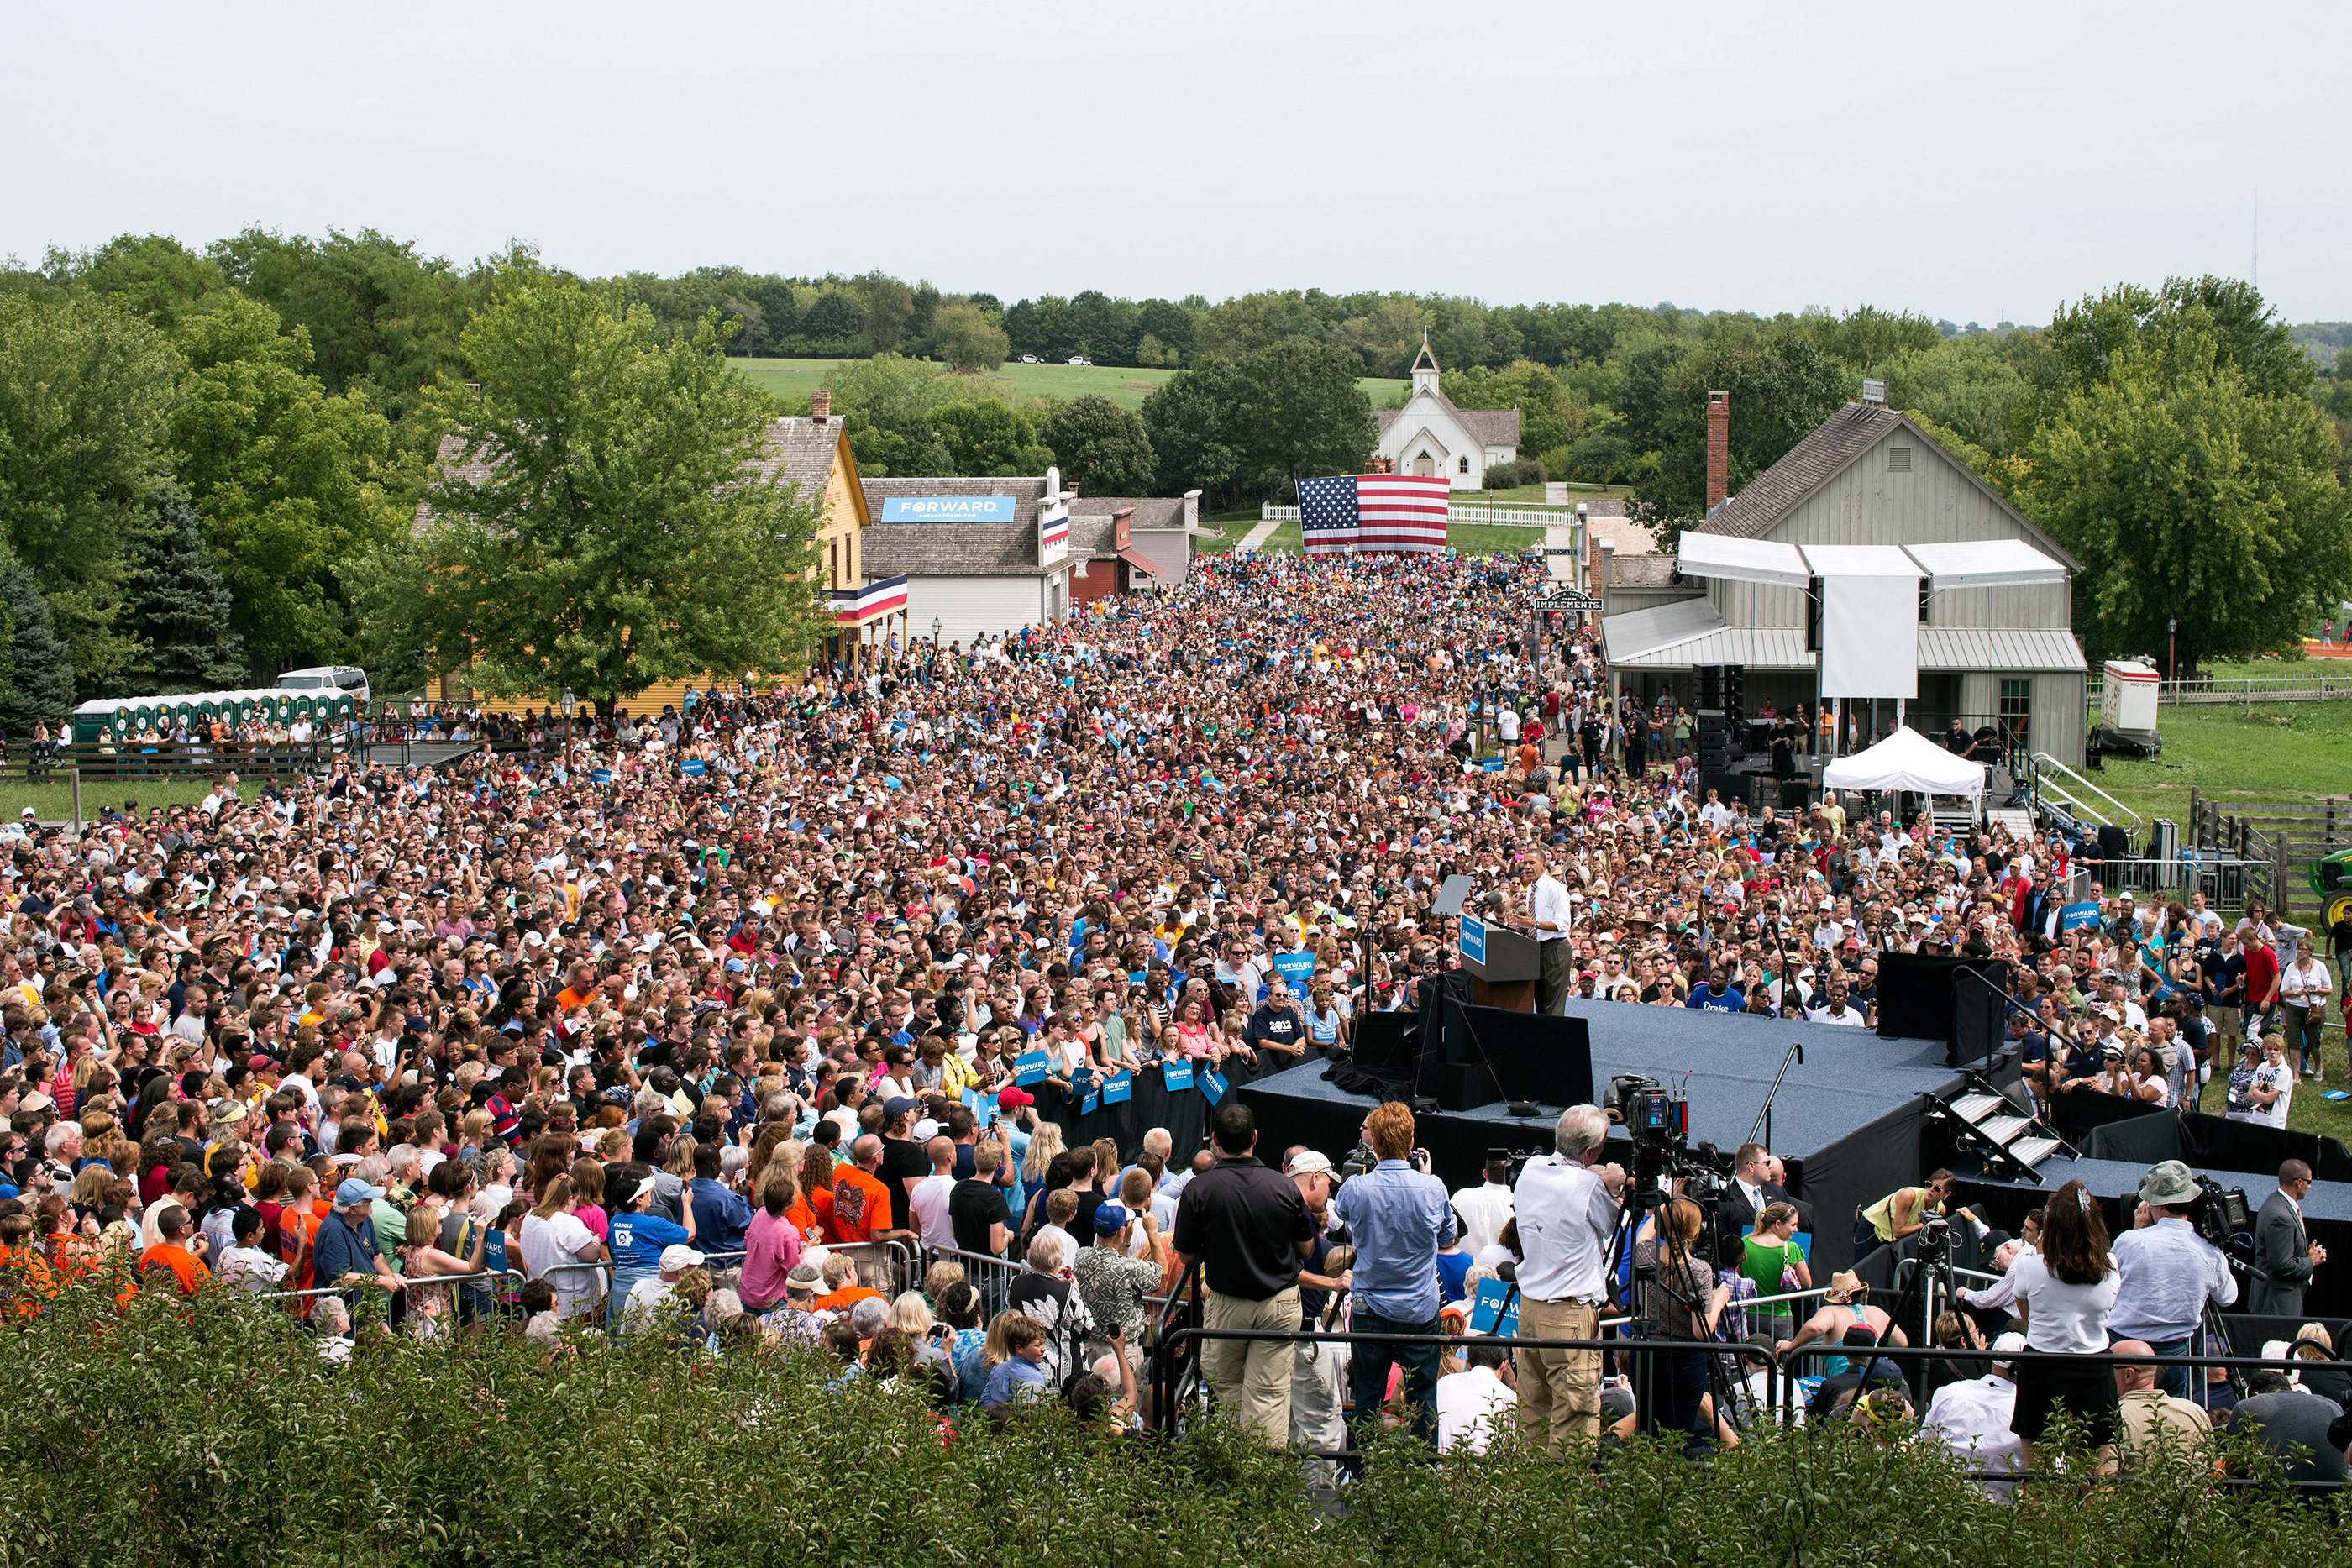 Iowa, Sept. 2012. Speaking at a grassroots campaign event at Living History Farms in Urbandale. (Official White House Photo by Pete Souza)